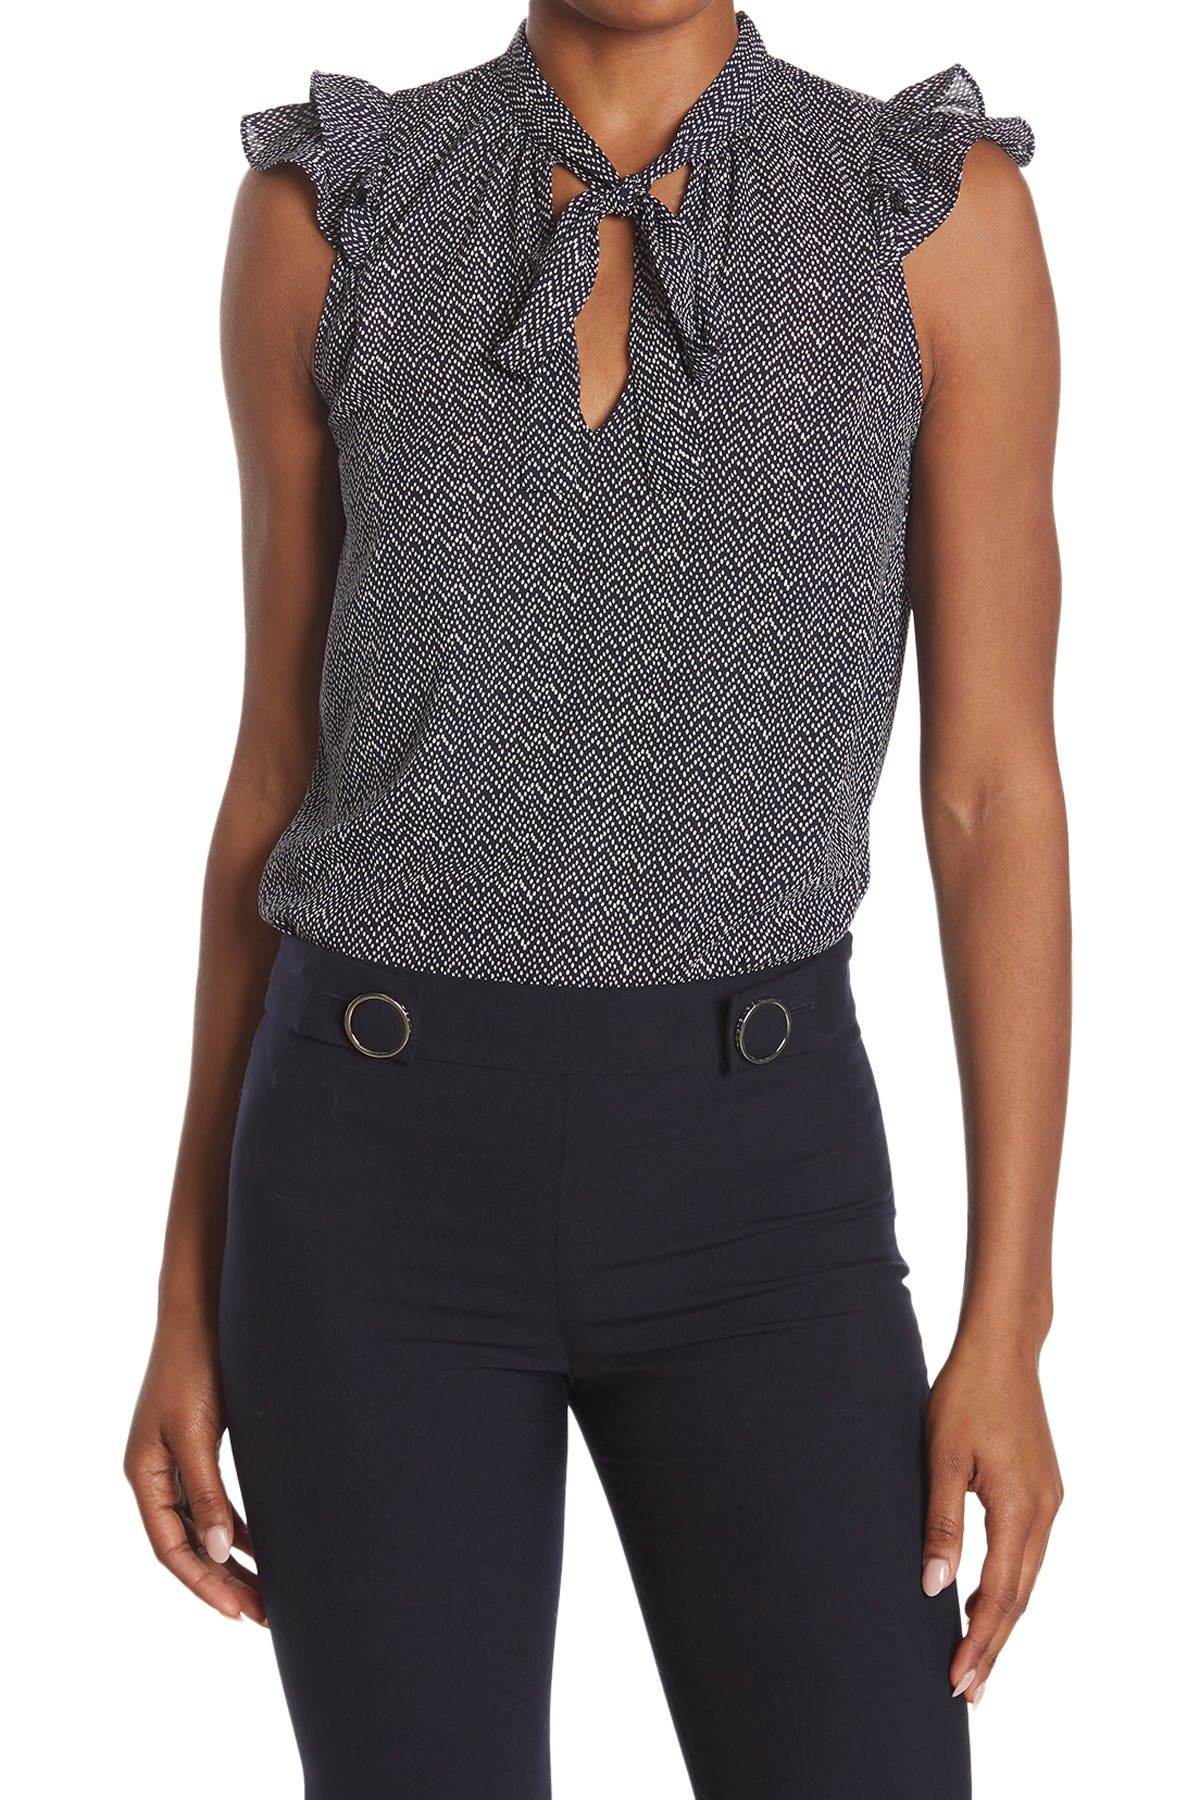 Image of ECLAIR Tie Neck Patterned Blouse